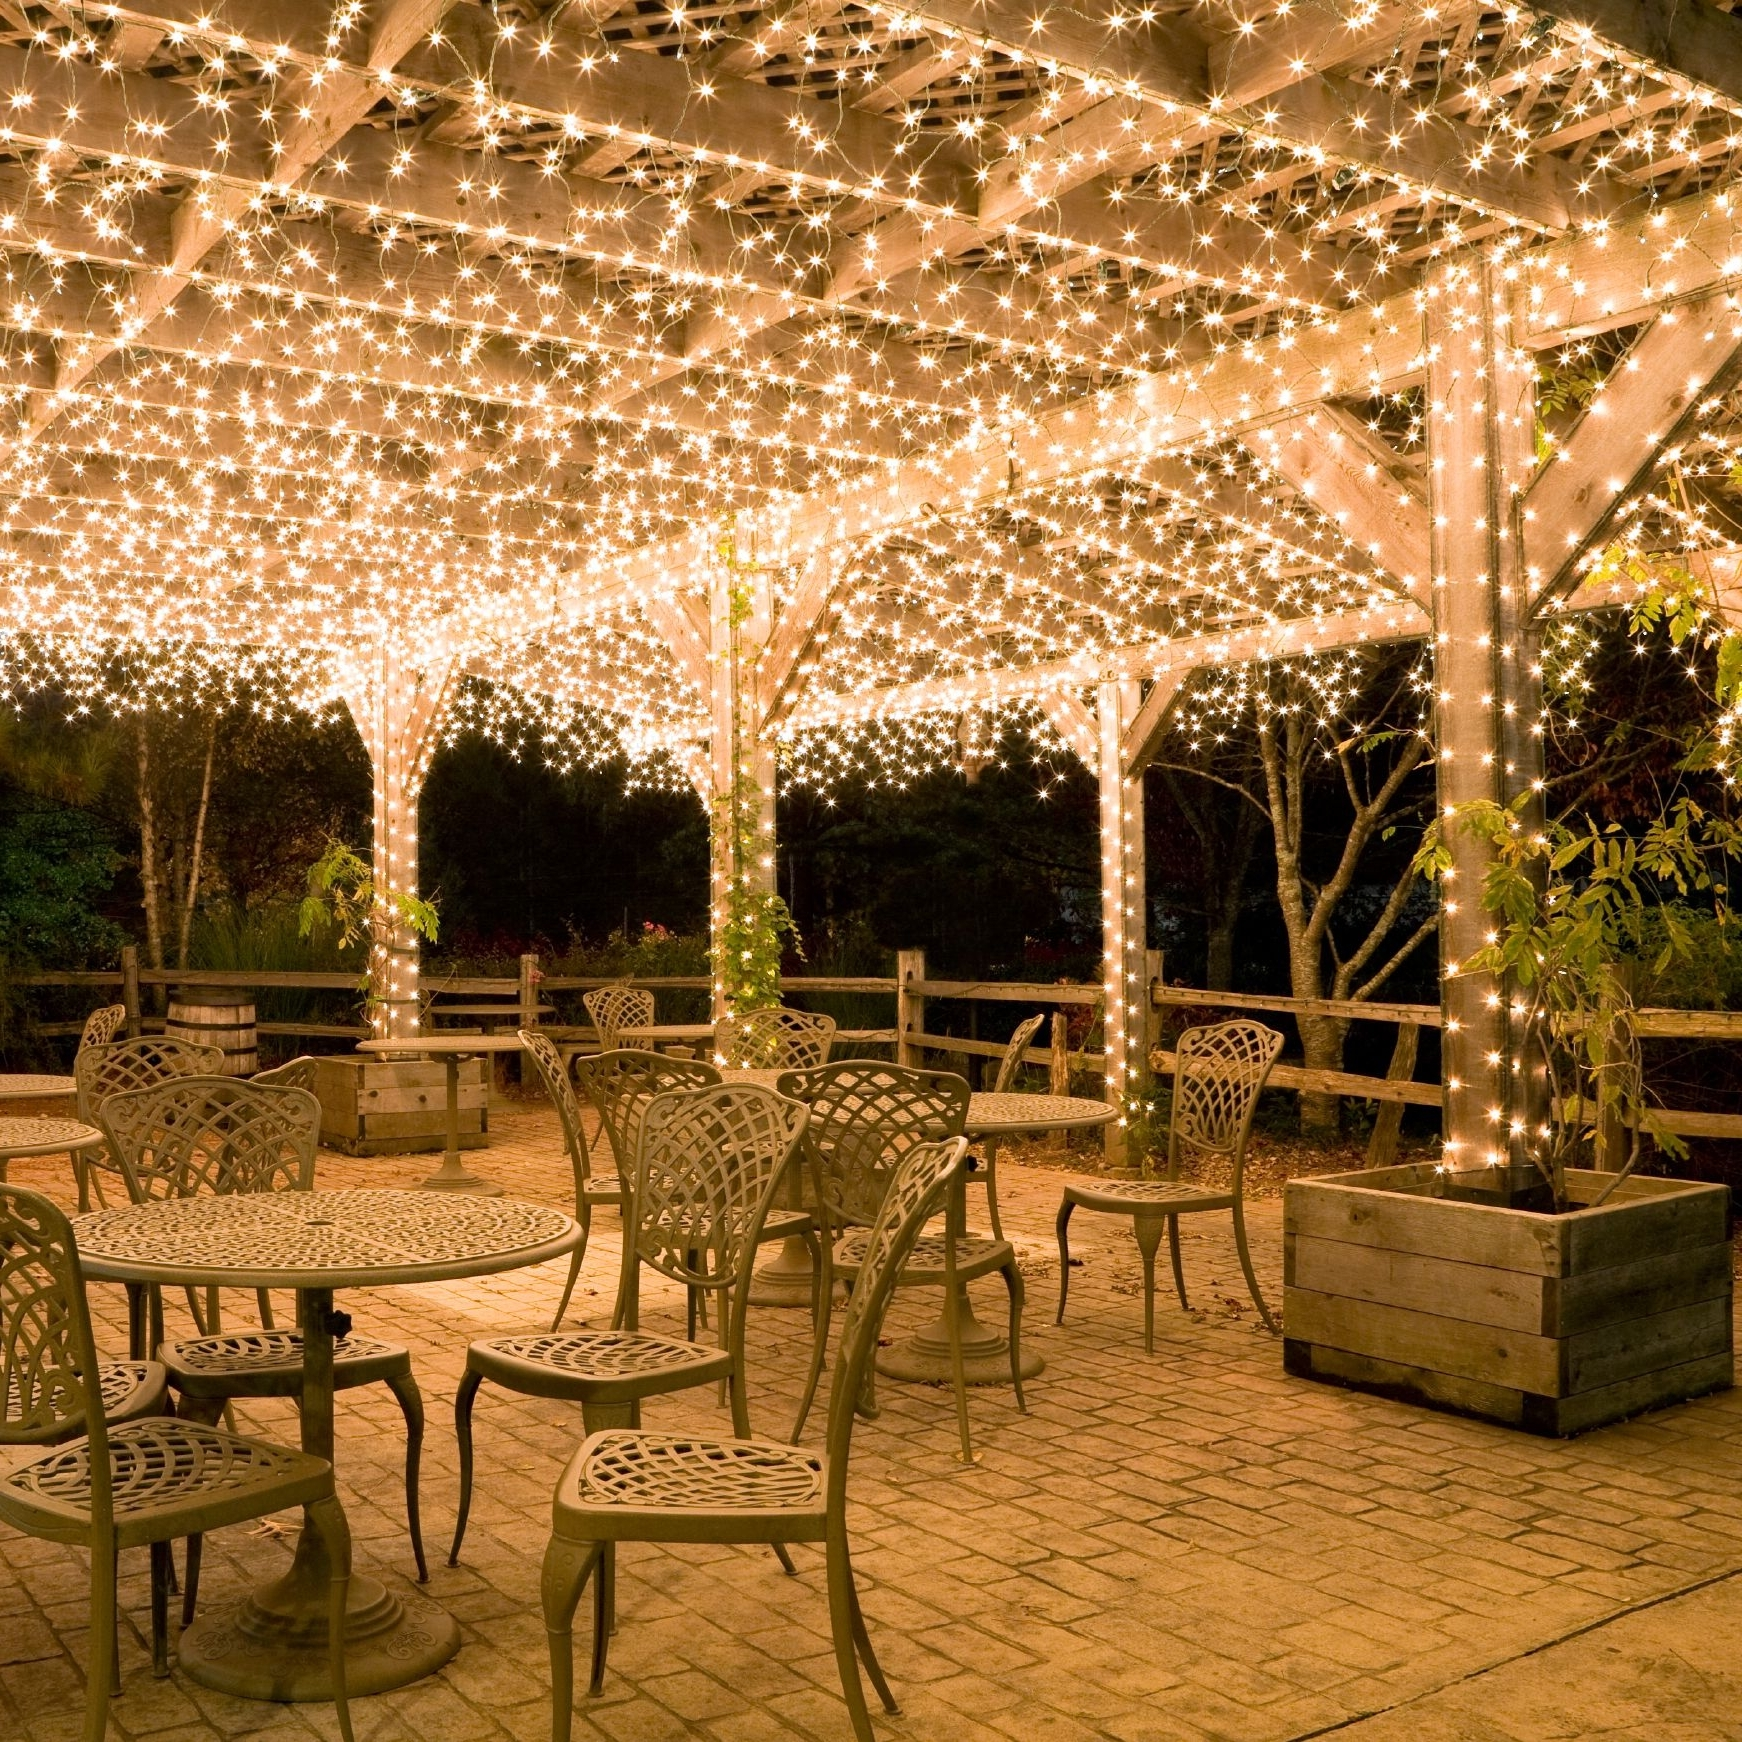 Favorite Hang White Icicle Lights To Create Magical Outdoor Lighting (View 7 of 20)